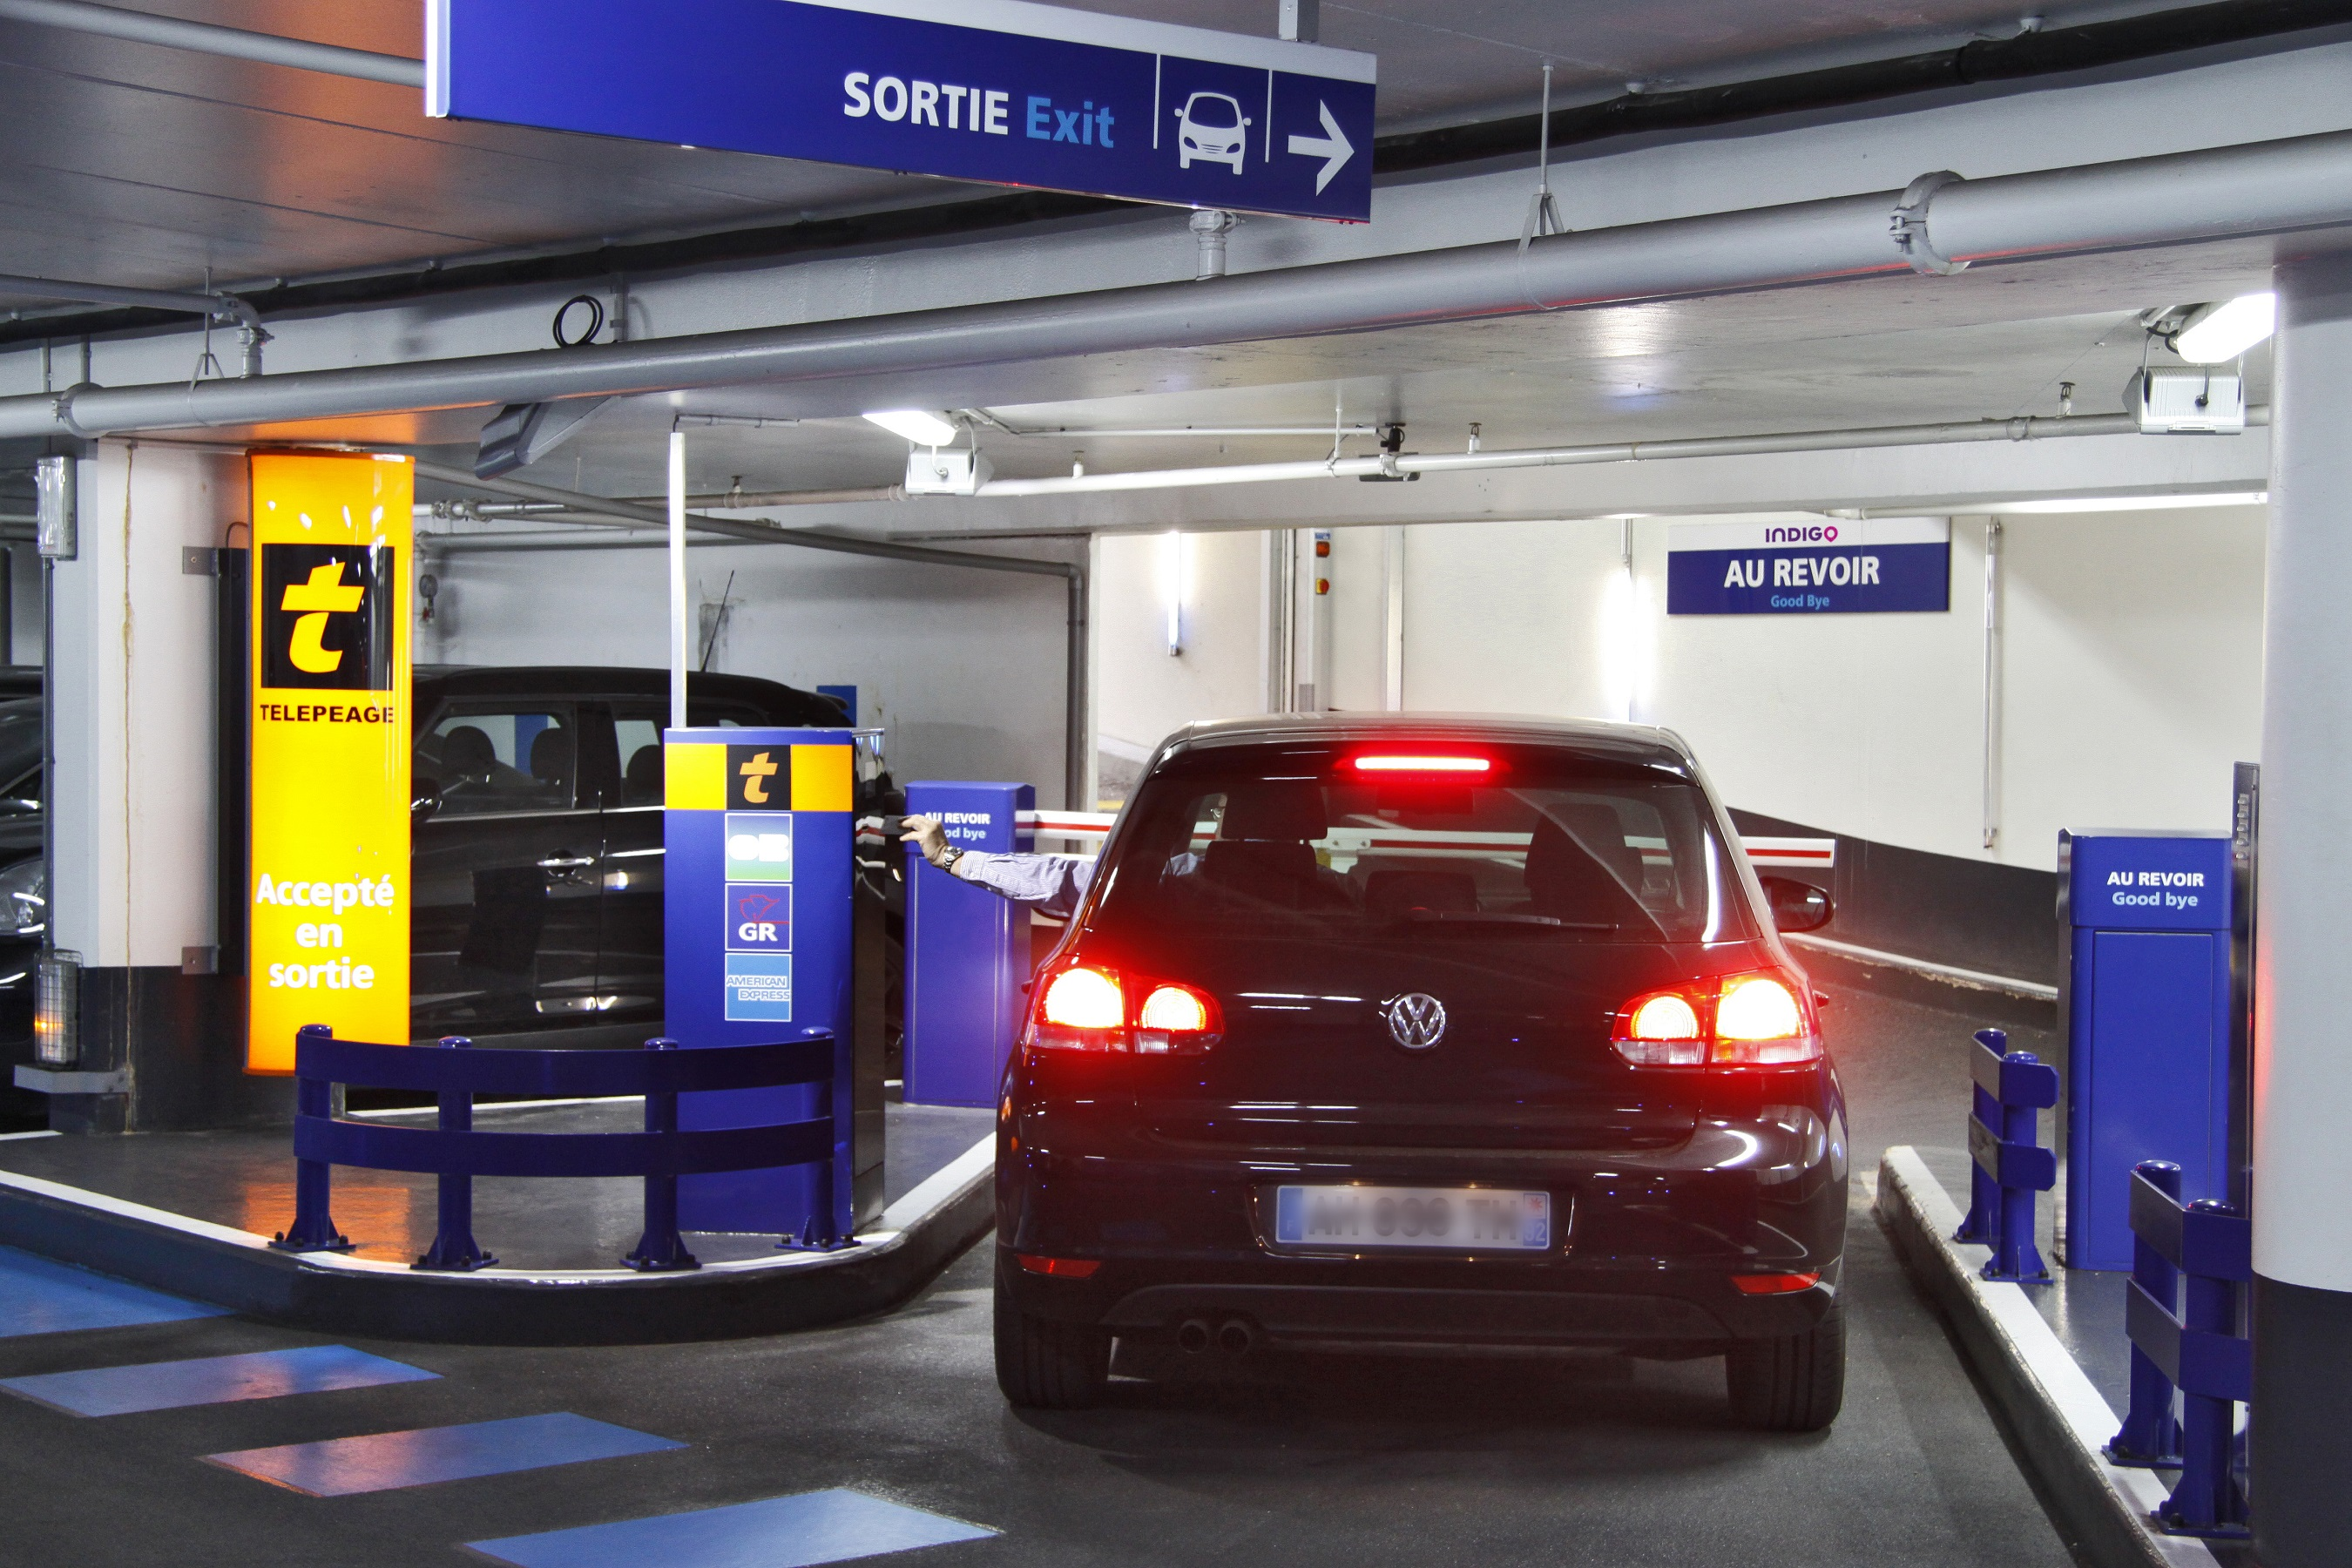 Parking Indigo Nogent Sur Marne Parking Marie Curie